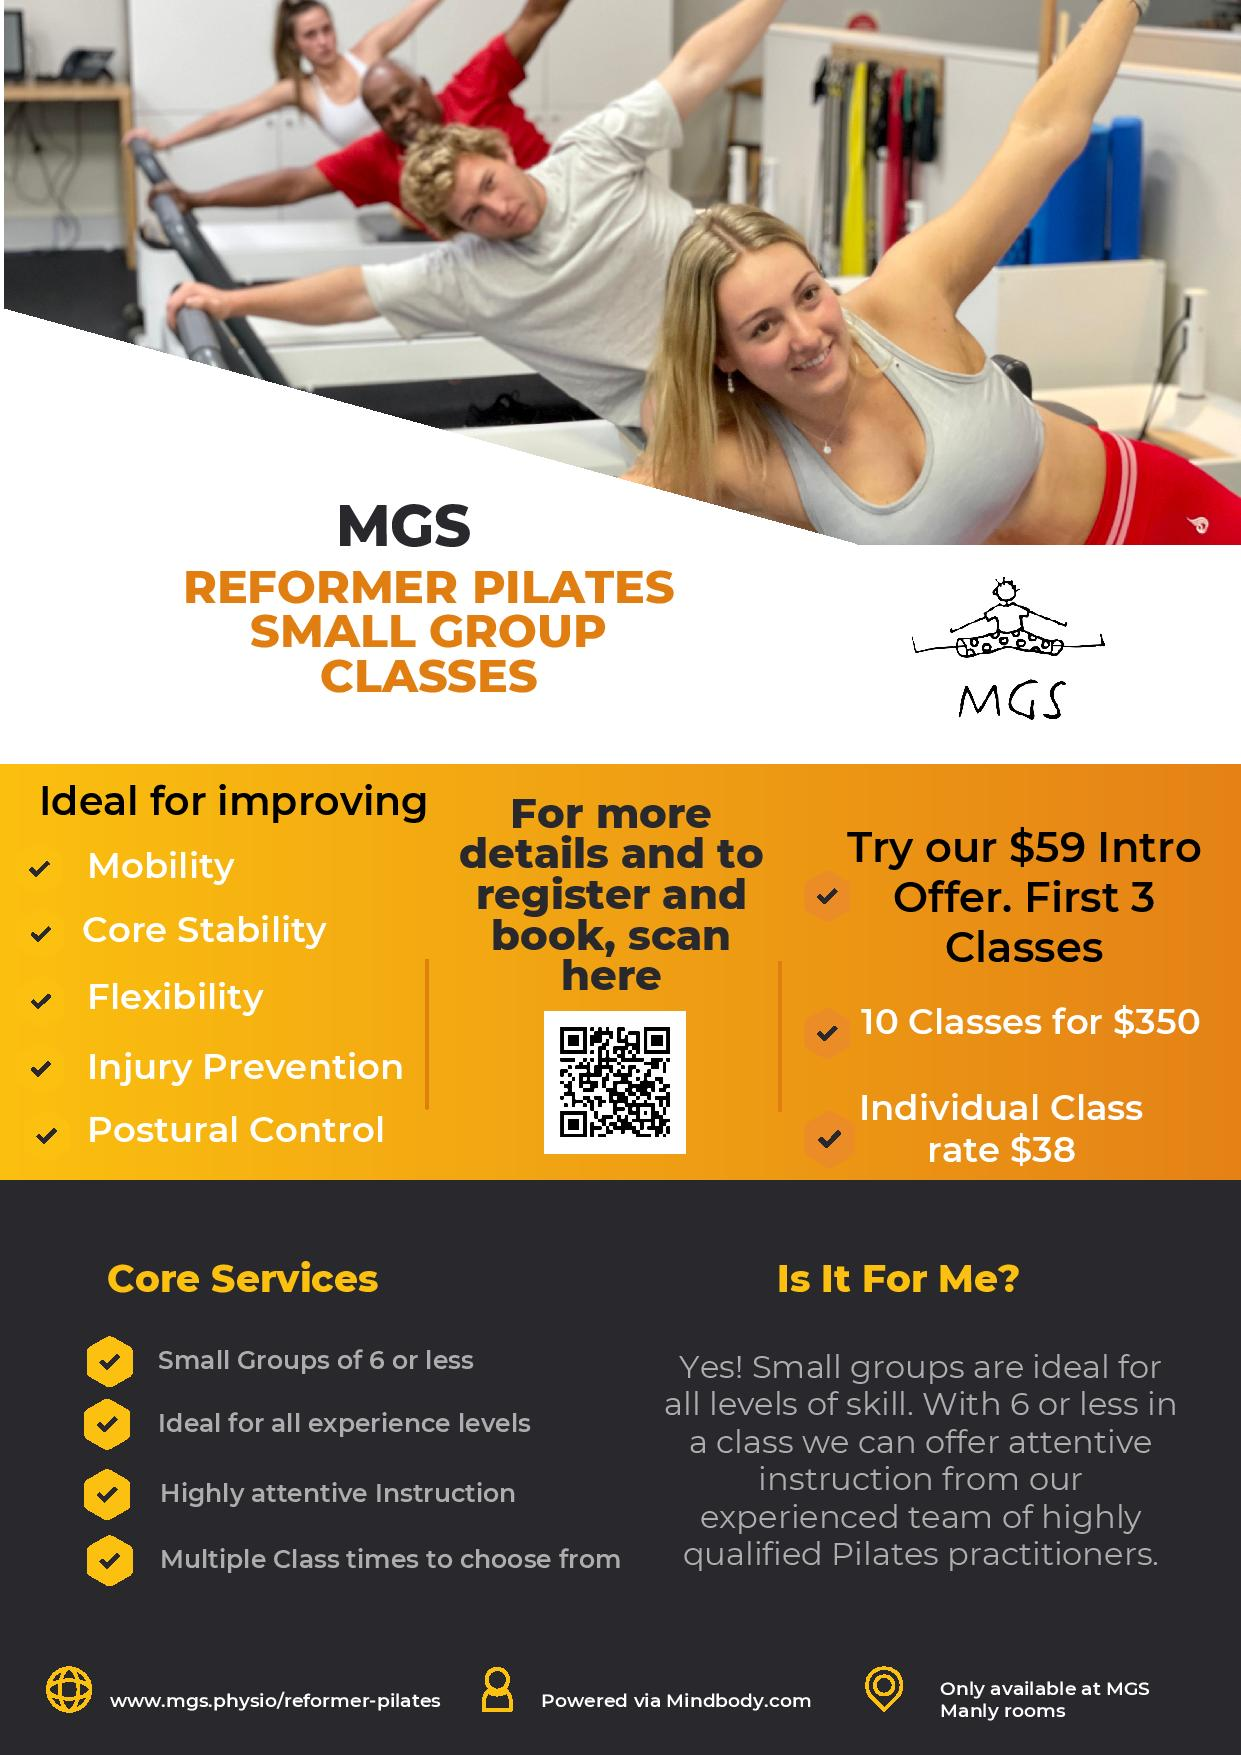 Manly Pilates Reformer Class